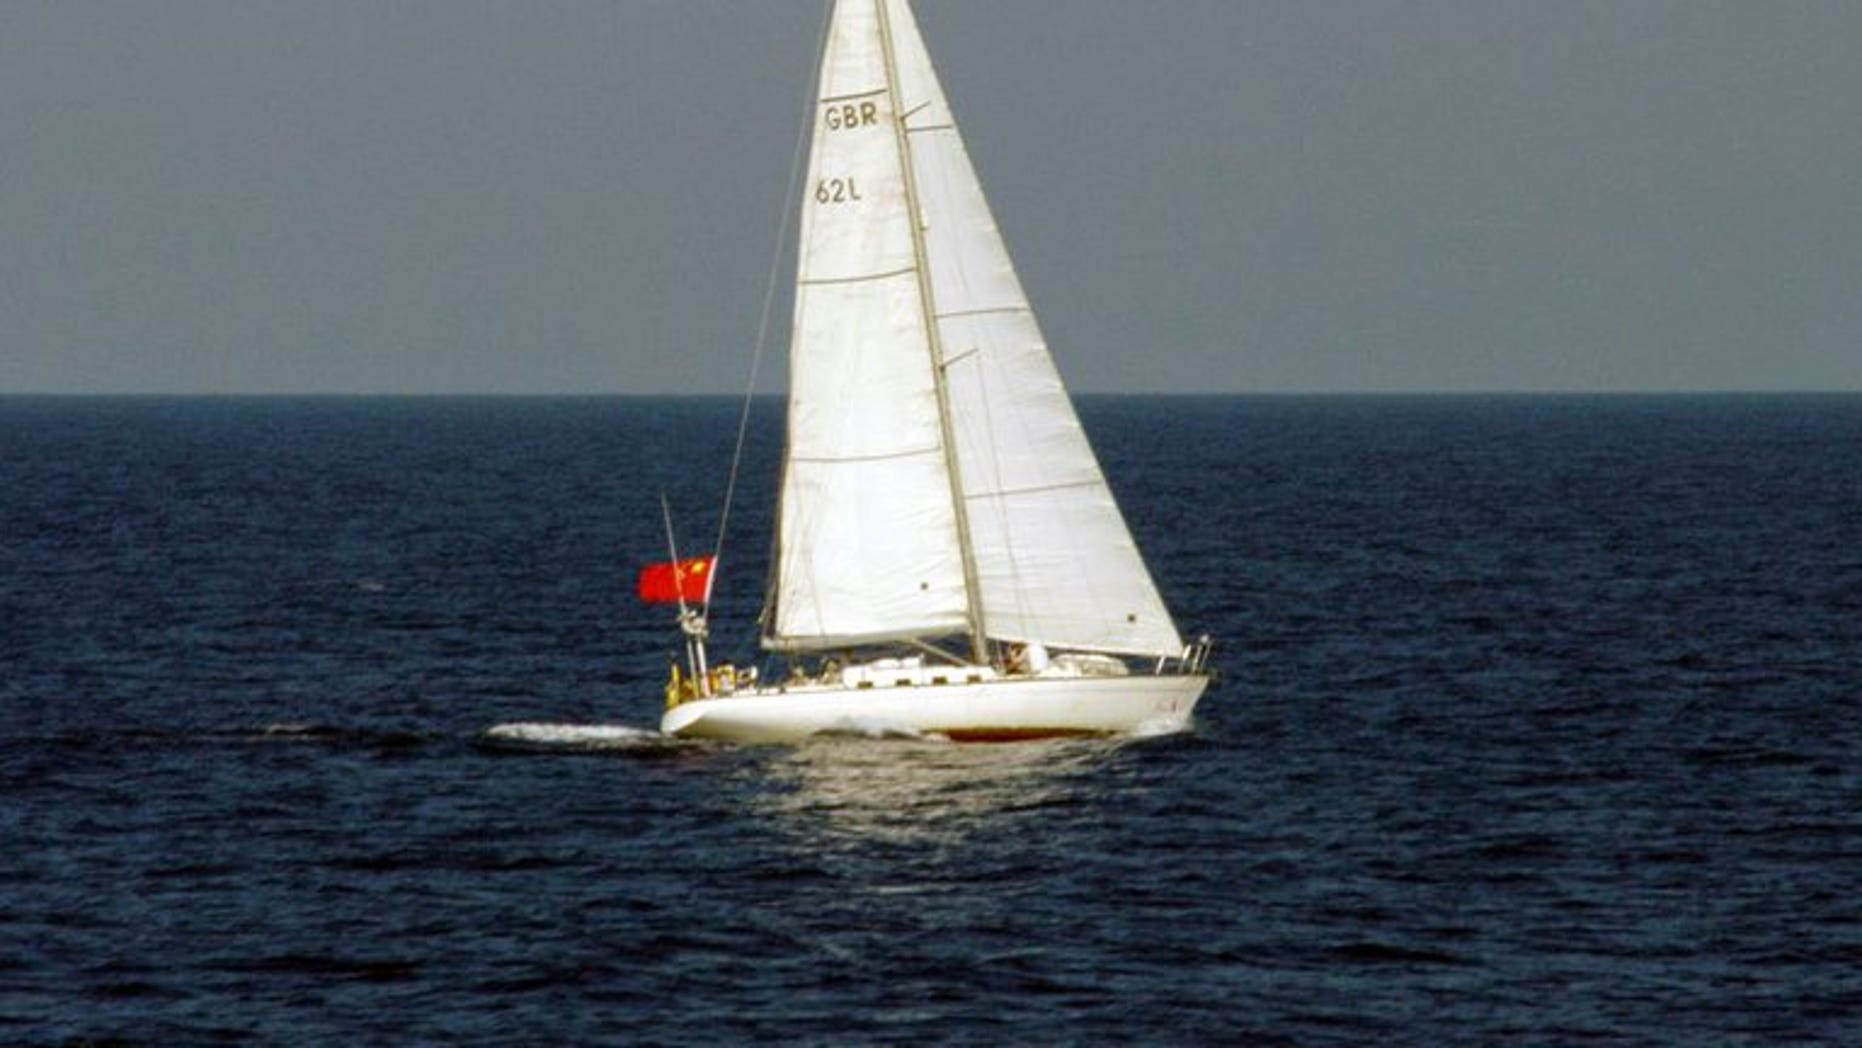 This photo, taken by Japan Coast Guard on August 3, 2013, shows a yacht of British registry carrying a Chinese flag as it cruises near the disputed islets known as the Senkaku islands in Japan and Diaoyu islands in China, in the East China Sea. The yacht entered Japan's territorial waters and sailers of the yacht threw a buoy with a red flag into the water and left the area.